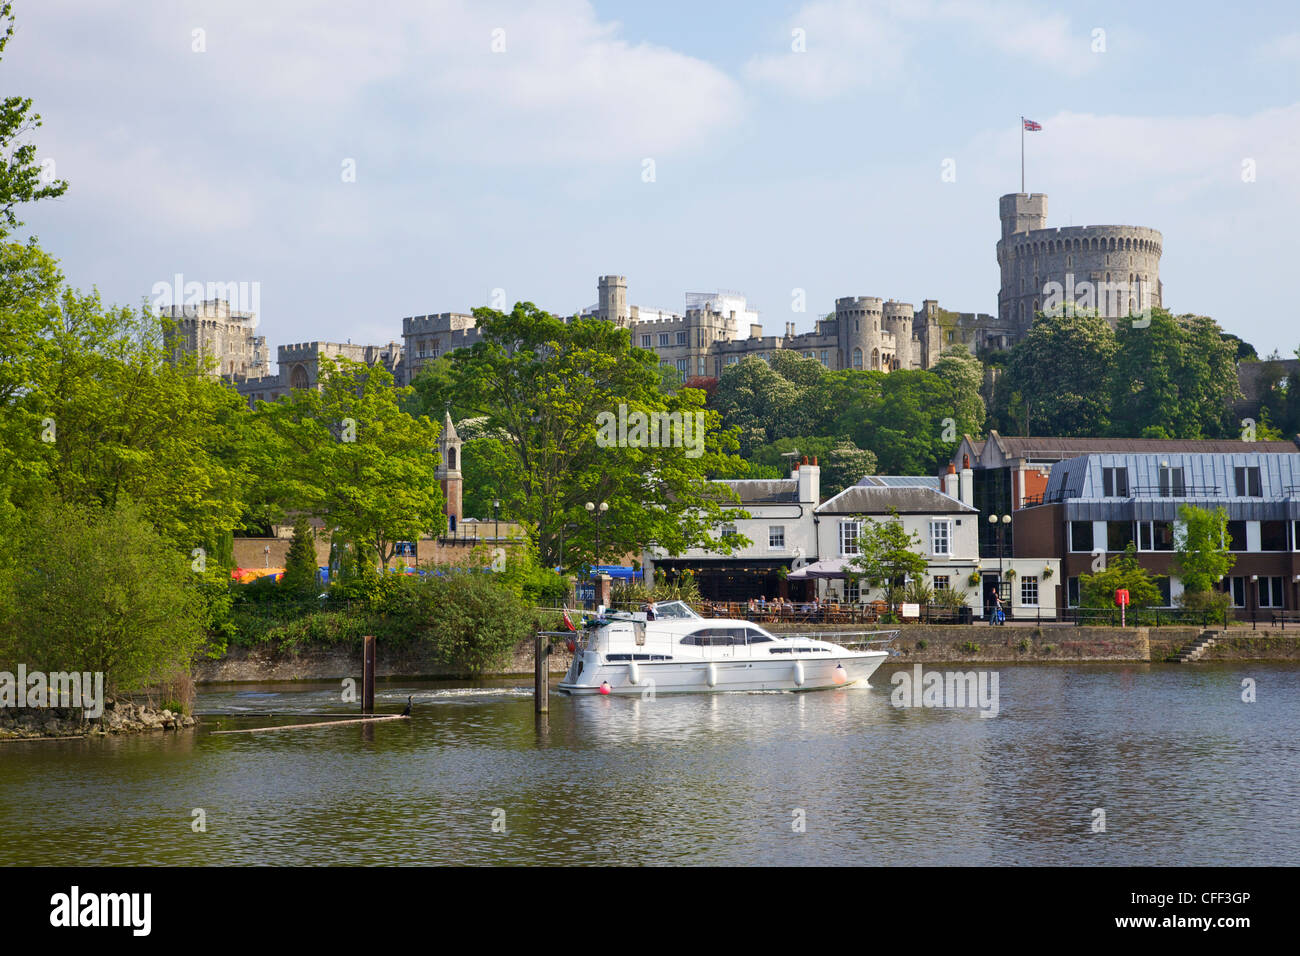 River Thames and Windsor Castle, Windsor, Berkshire, England, United Kingdom, Europe - Stock Image